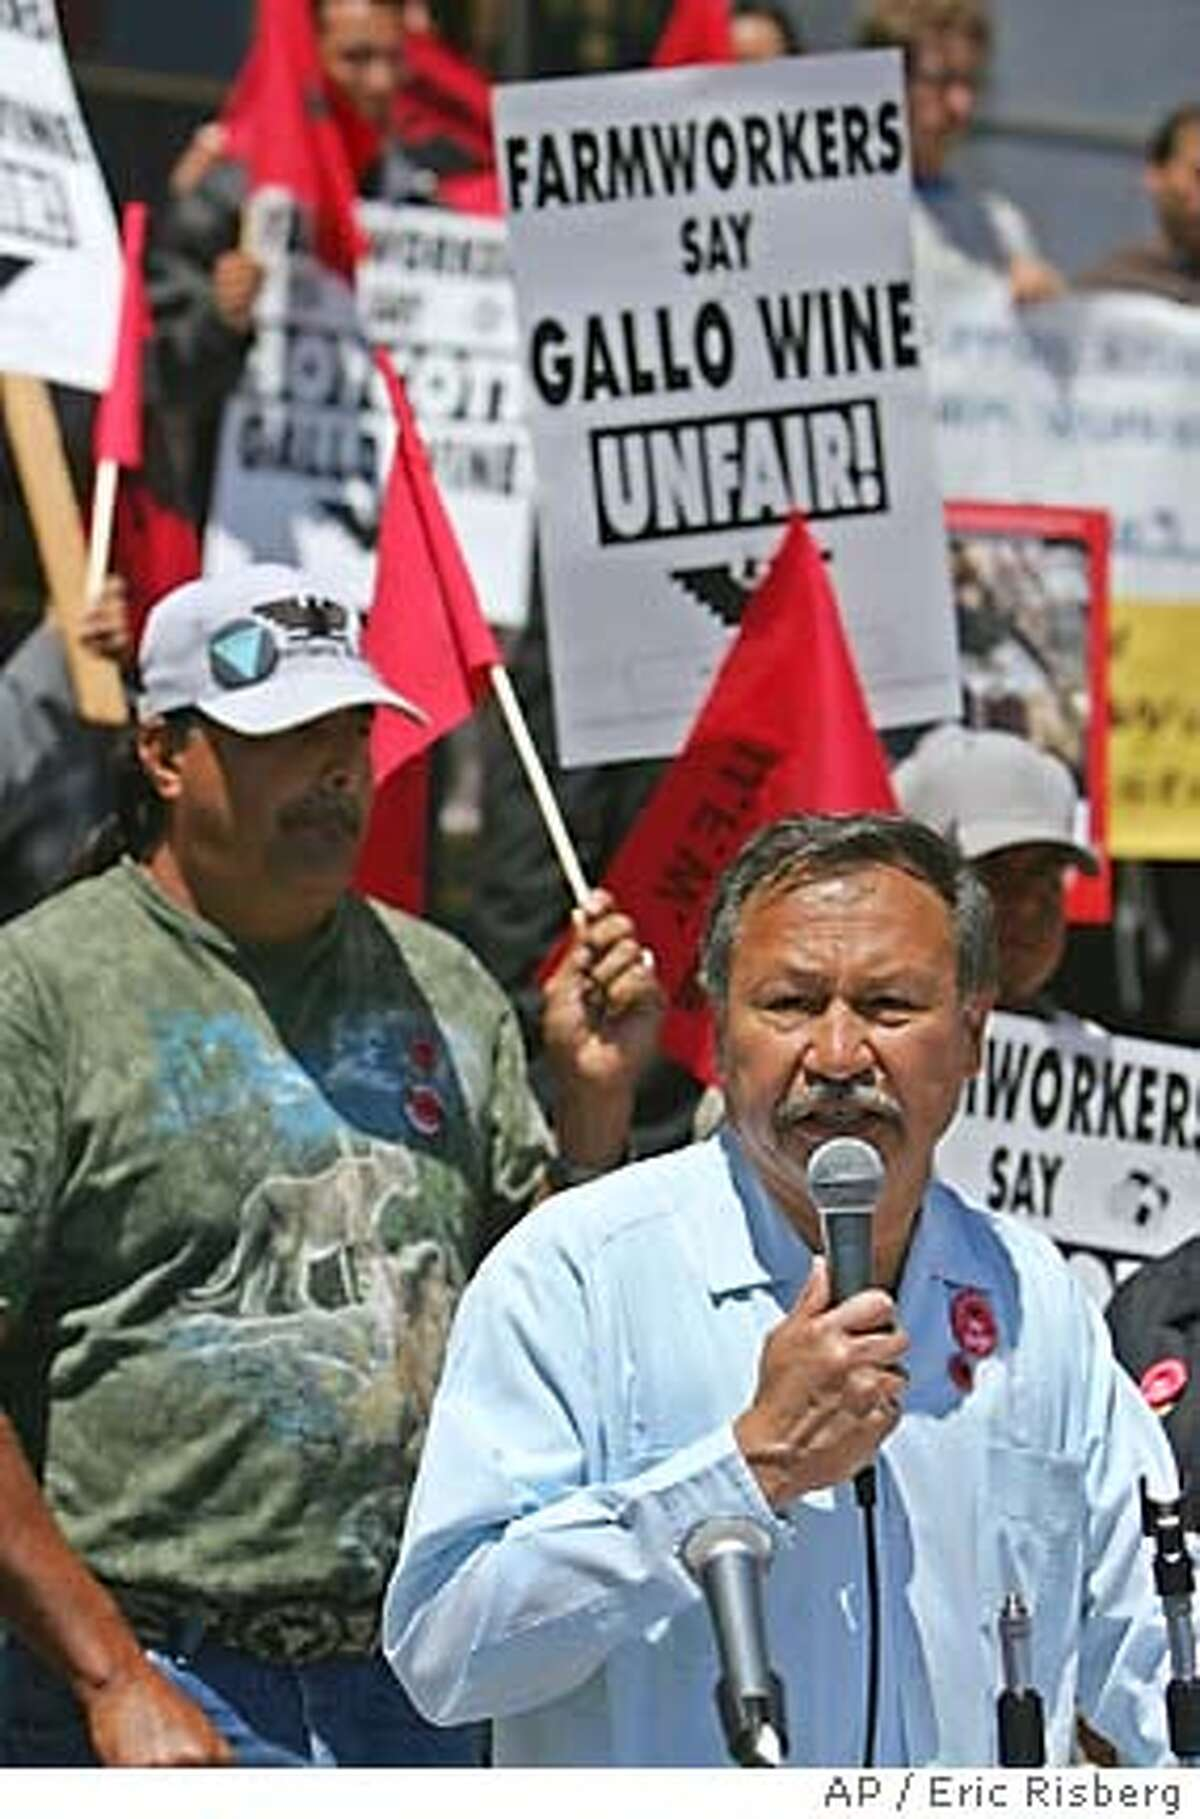 Arturo Rodriguez, right, president of the United Farm Workers union calls for a boycott of Gallo wine during a rally outside City Hall in San Francisco, Tuesday June 14, 2005. The United Farm Workers union is asking consumers to stop buying Gallo wine, saying the California vintner isn't treating workers fairly in contract negotiations. The rally kicked off the UFW's first major nationwide boycott in more than 20 years. At left is Antonio Campa, a 26-year employee at Gallo wine in Sonoma County.(AP Photo/Eric Risberg)